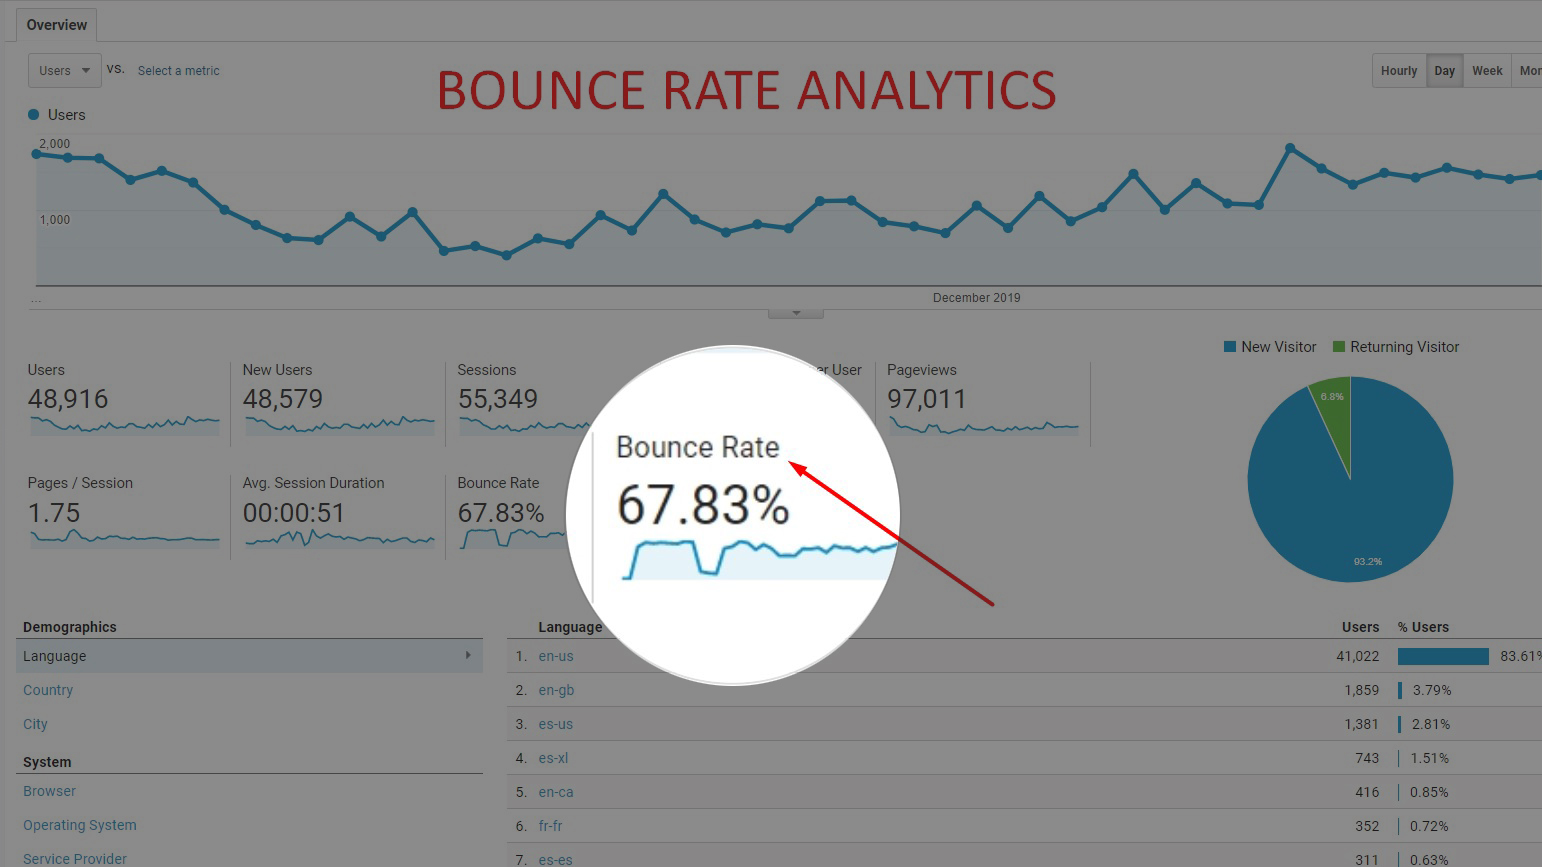 Bounce Rate Analytics